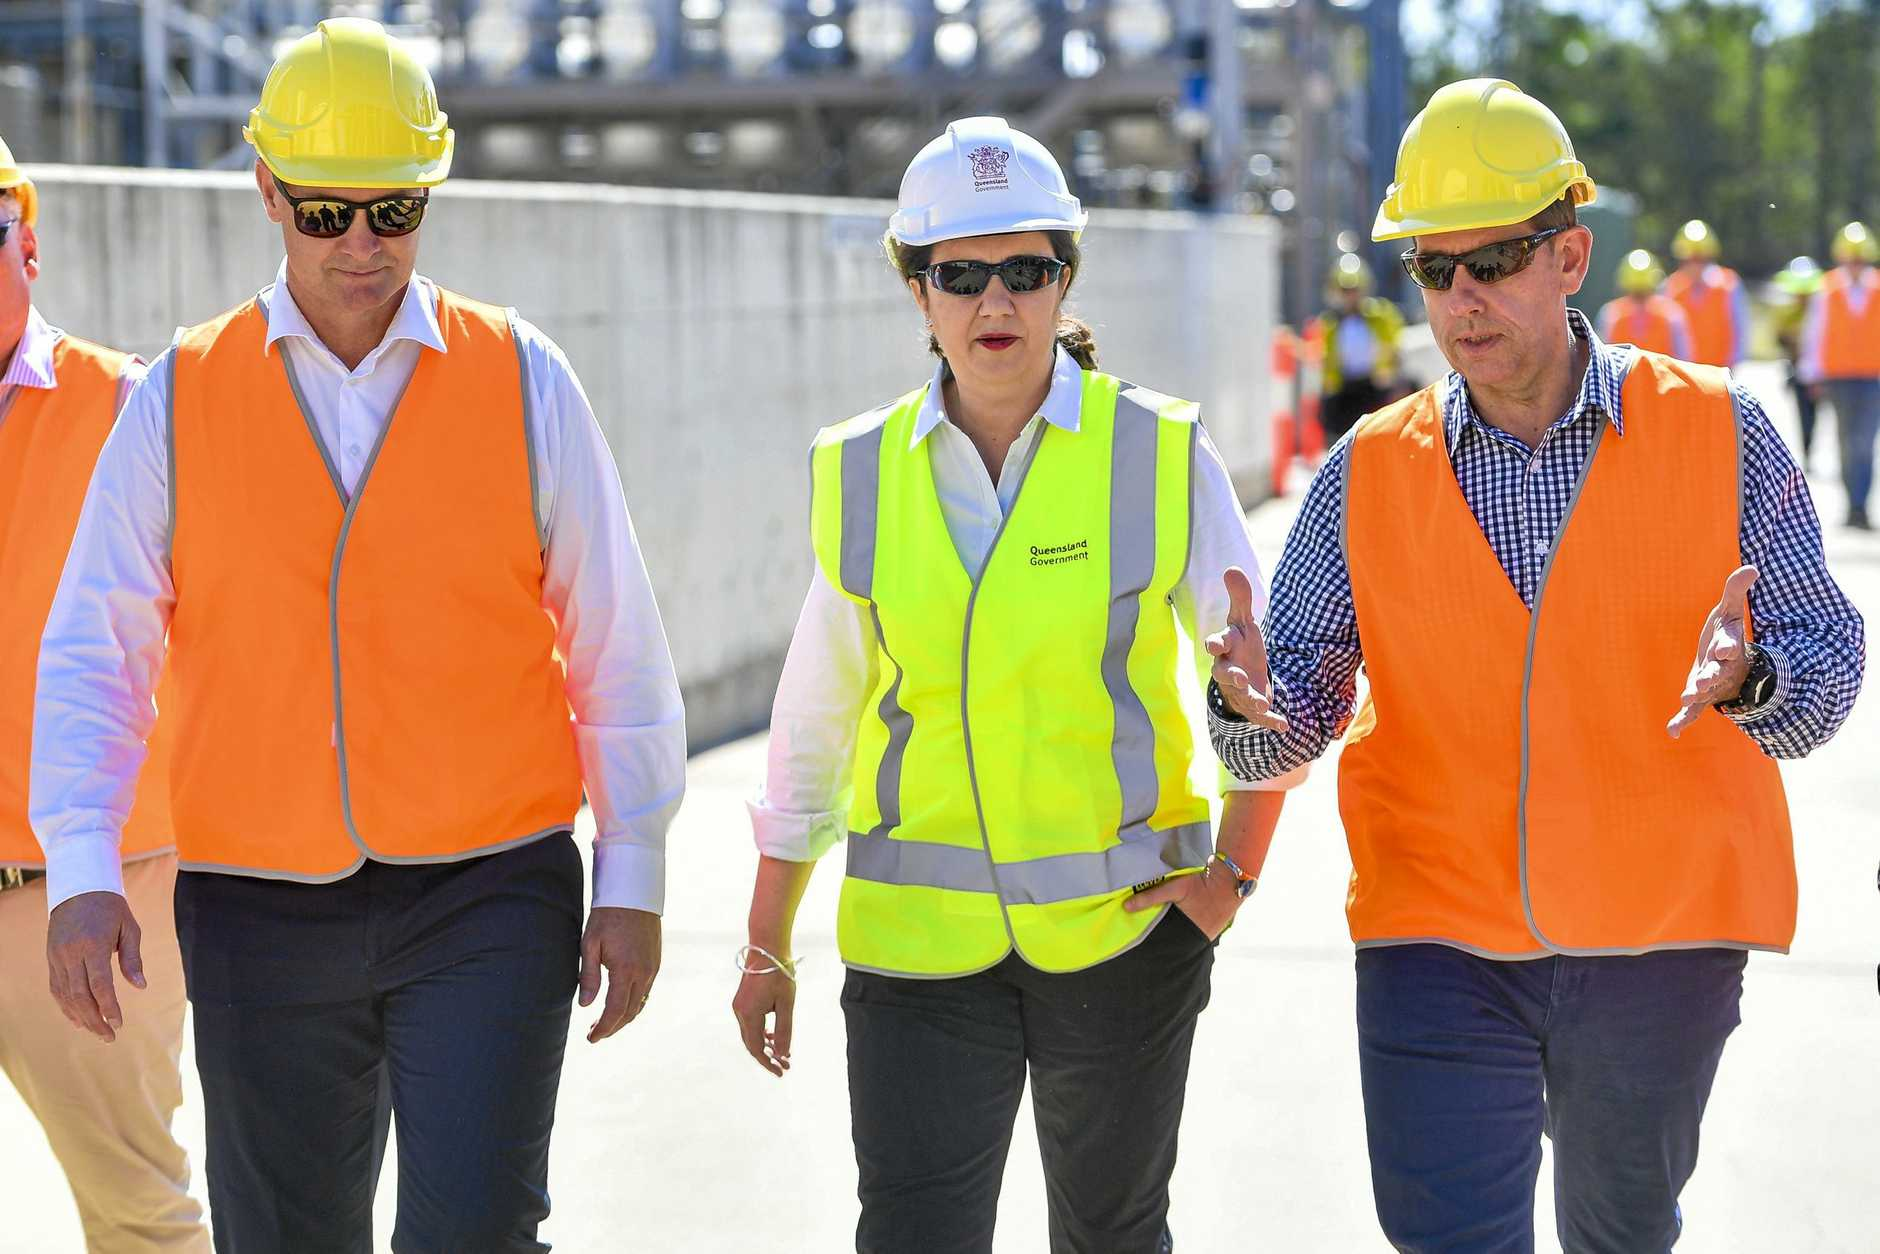 Queensland Premier Annastacia Palaszczuk, Gladstone MP Glenn Butcher and Minister for State Development, Manufacturing, Infrastructure and Planning Cameron Dick at Northern Oil Refinery to announce the Queensland Government's new hydrogen plan.